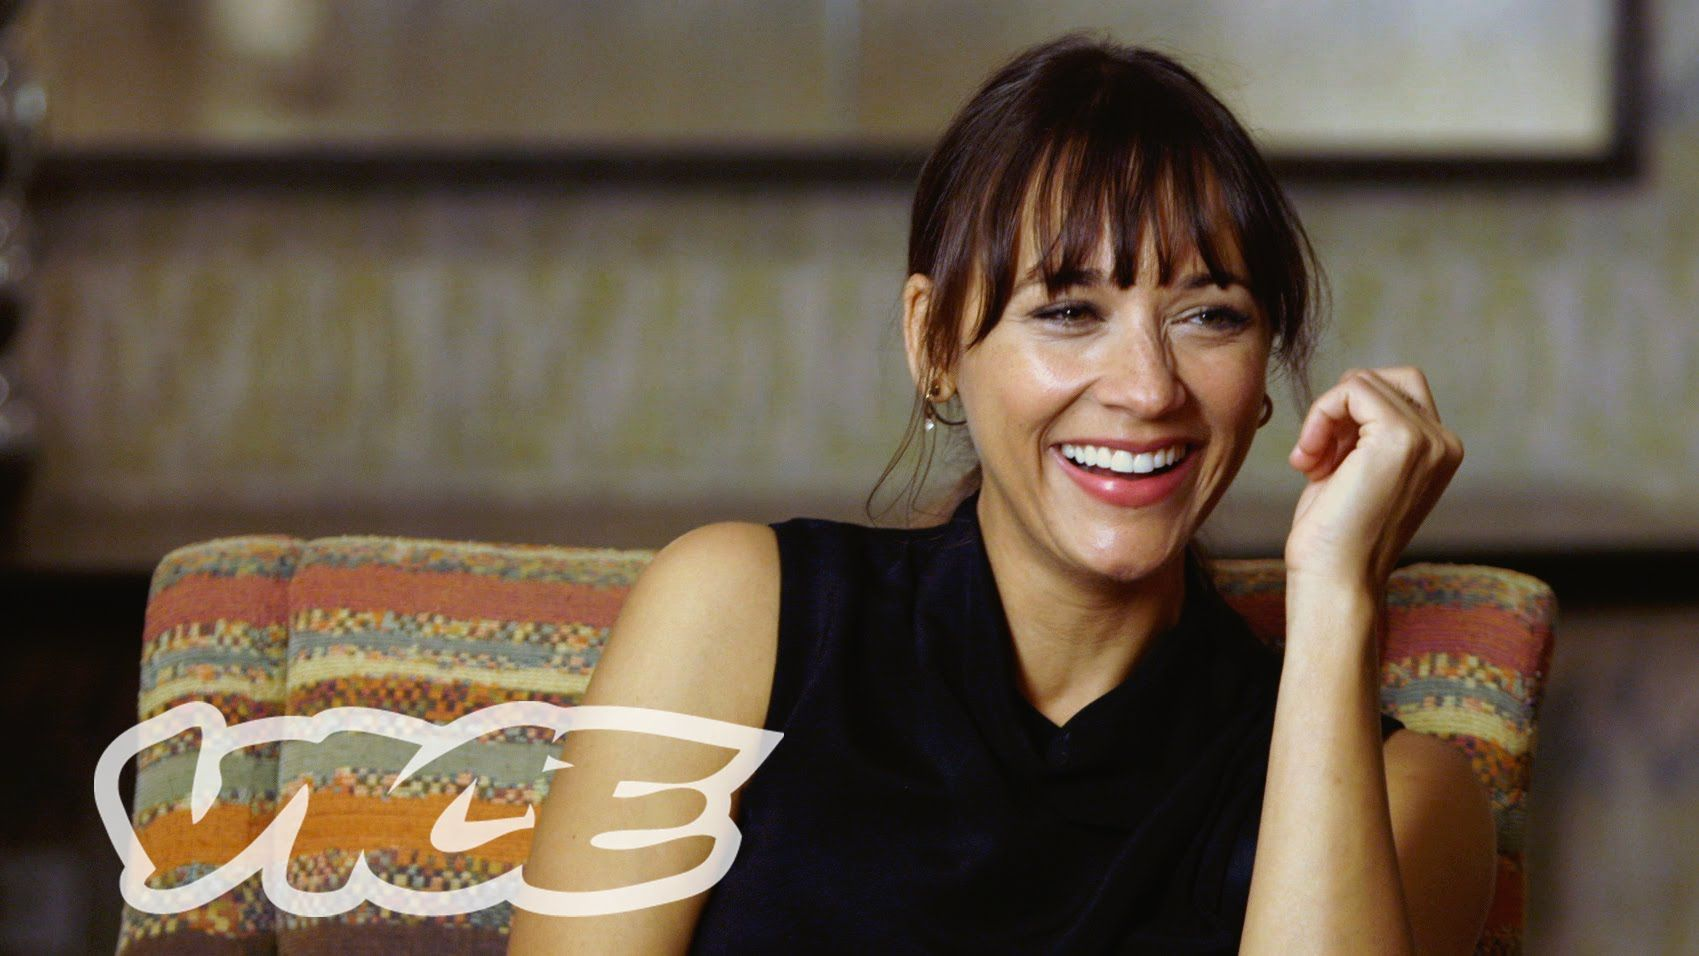 Vice Great Interview With Rashida Jones Talks About Her -8006